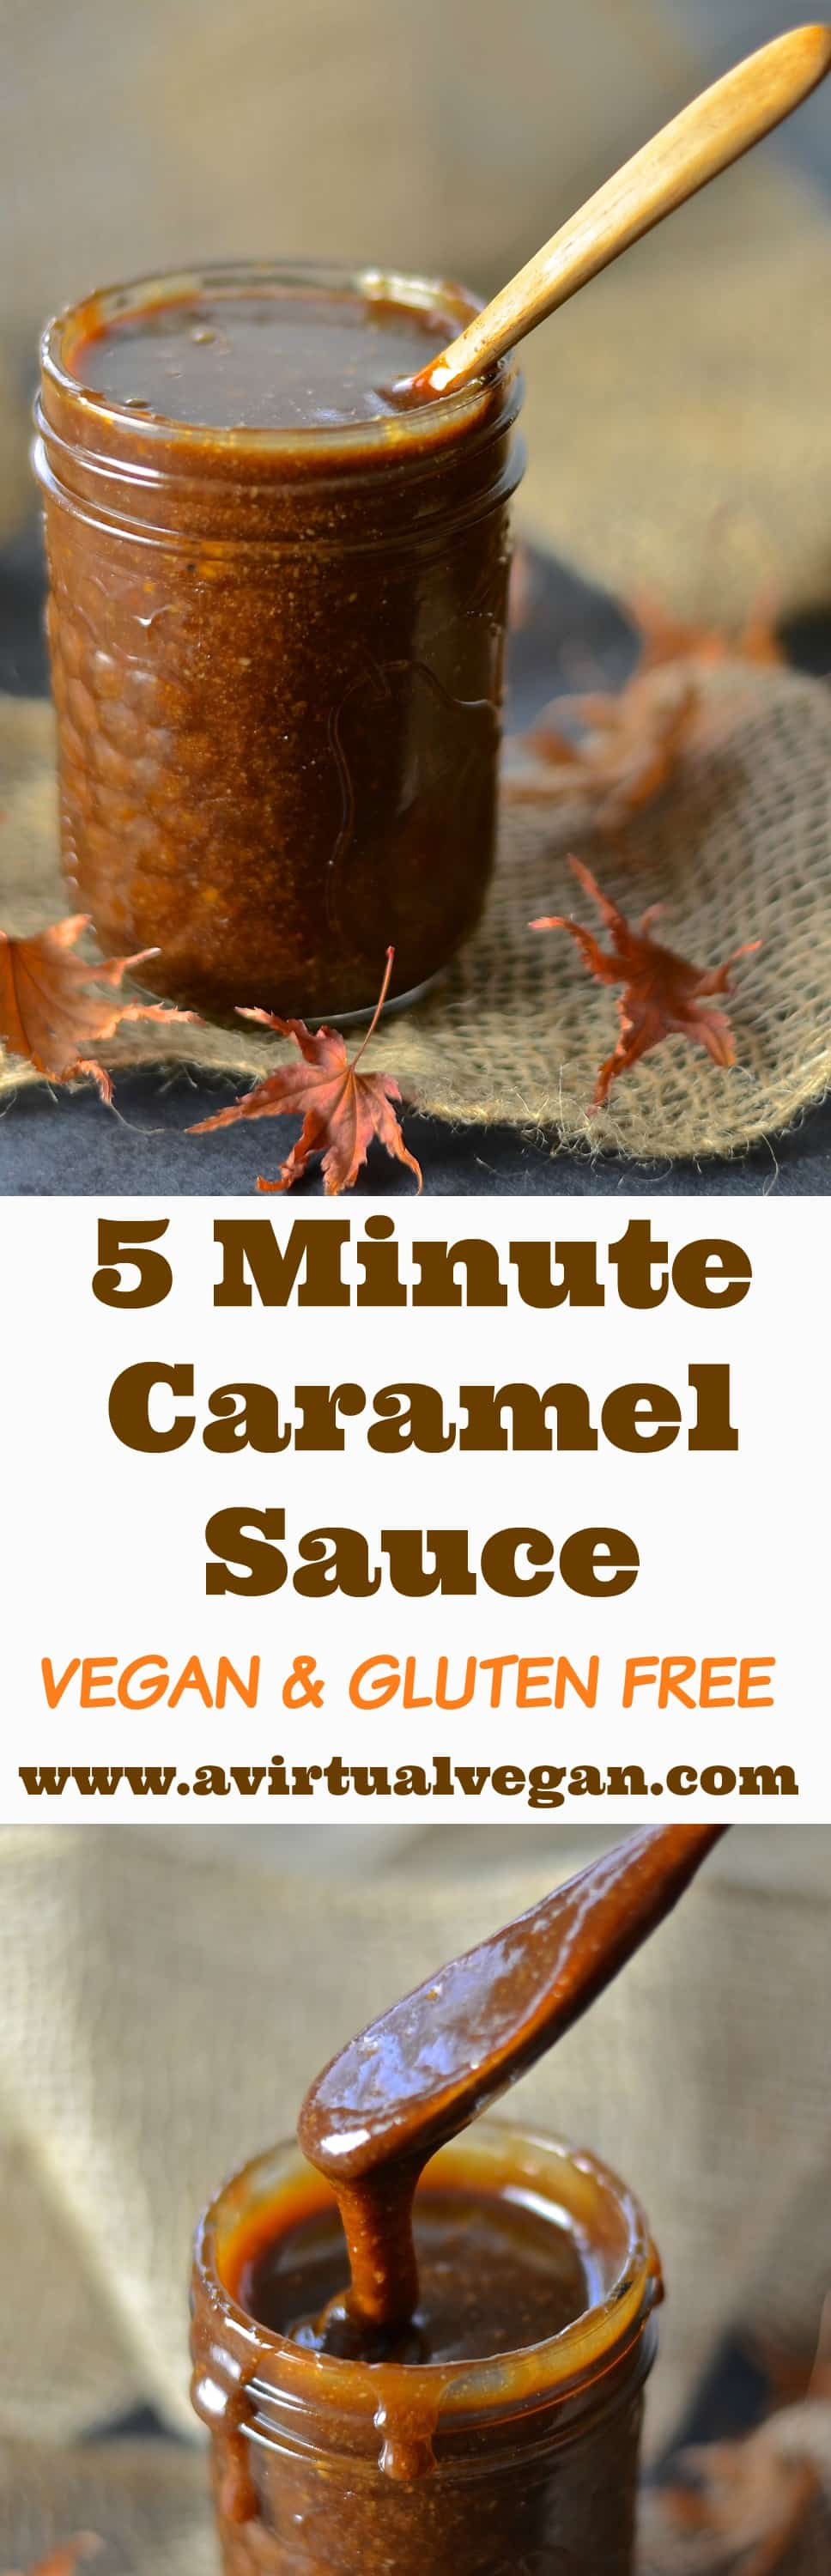 Dangerously addictive, ooey-gooey, rich & thick vegan caramel sauce. Ready in under 5 minutes & so incredibly delicious that you will need all of your will power not to eat it straight from the jar. Don't say I didn't warn you!